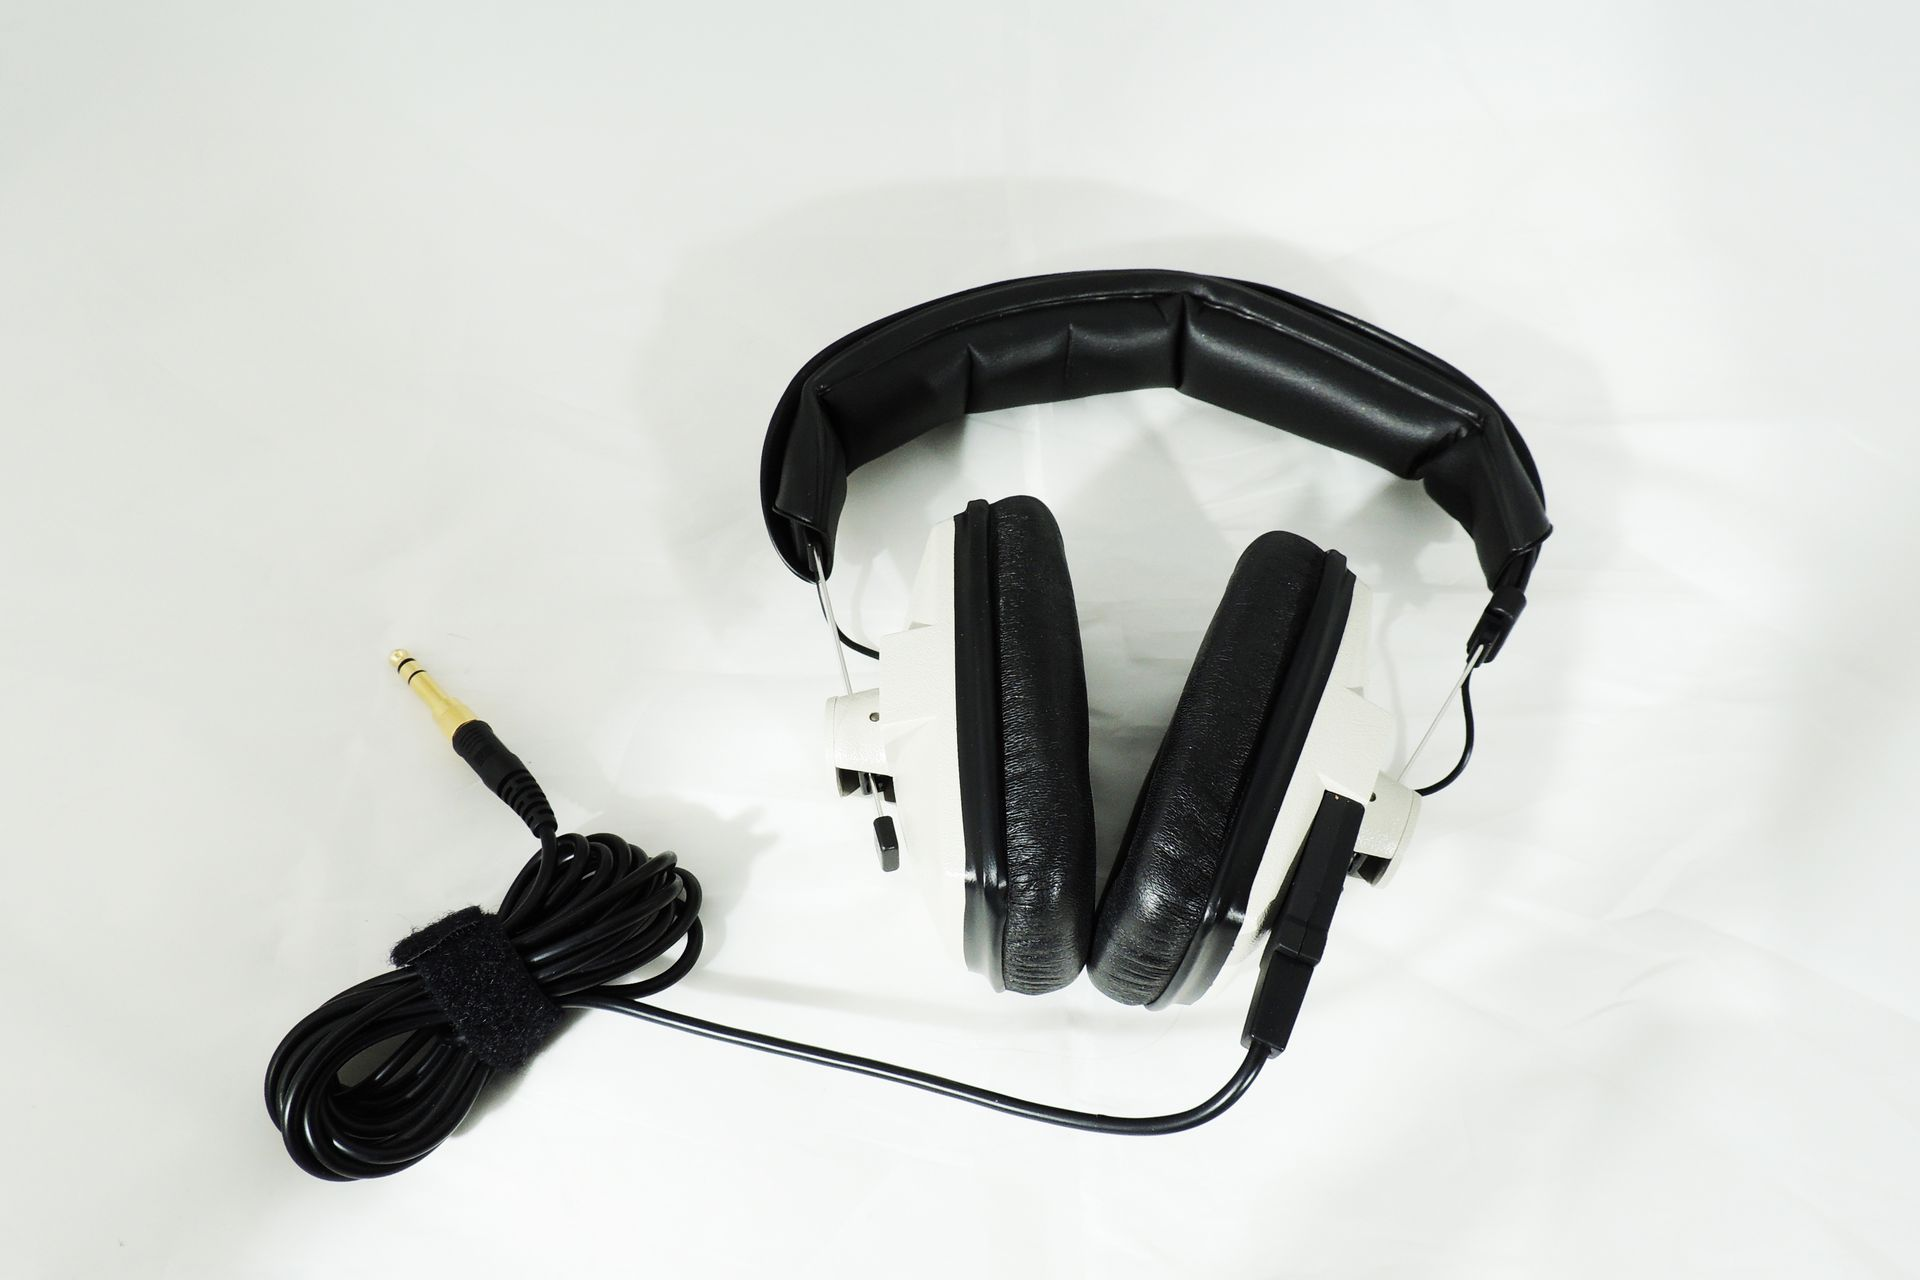 Beyerdynamic DT-100 400 Ohm headphones for sale at Plasma Music